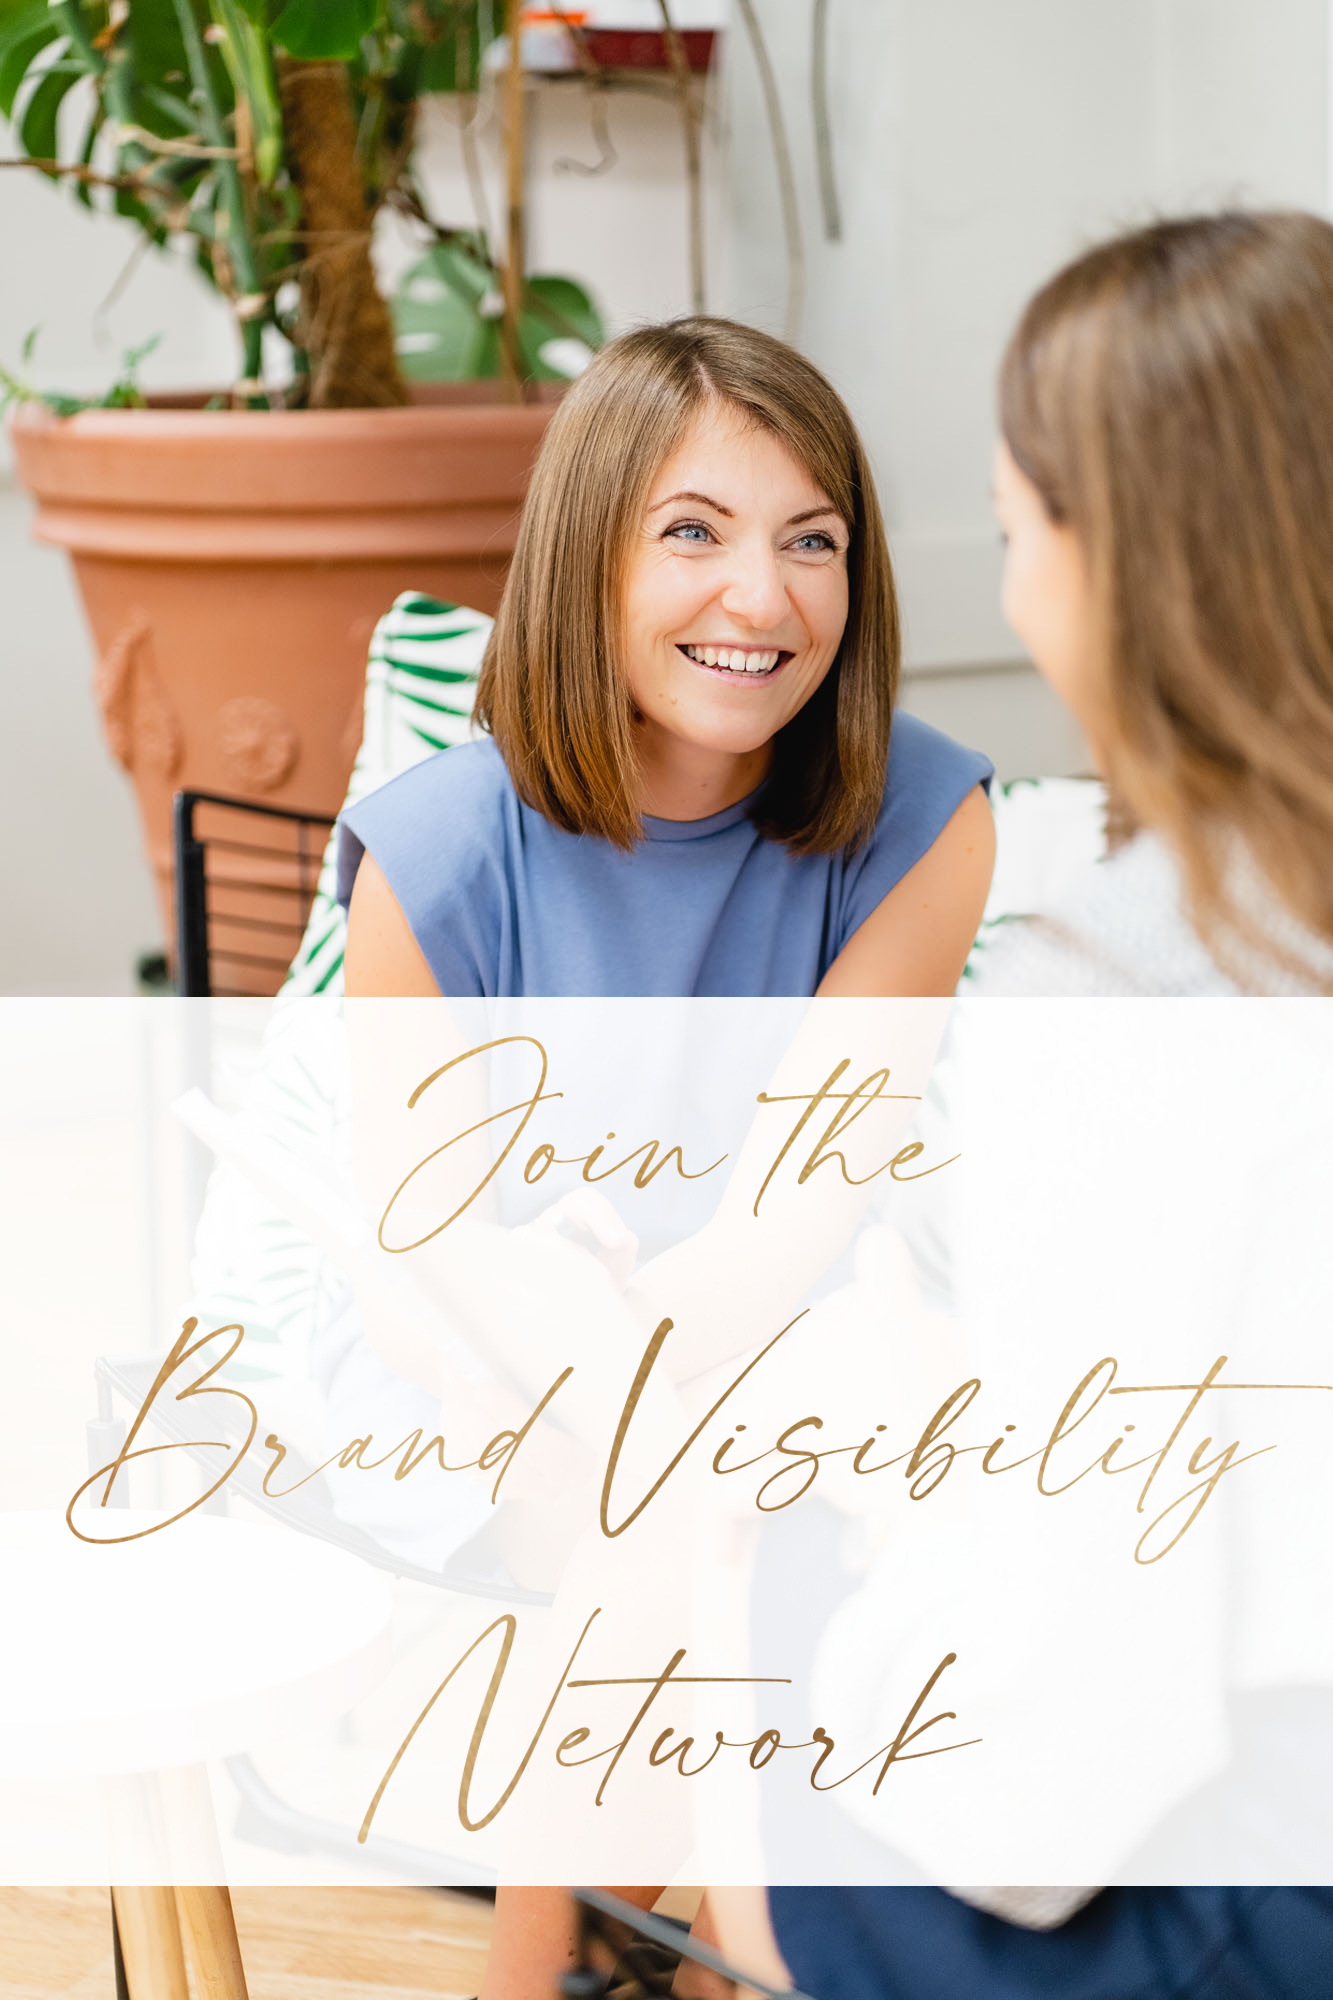 join the brand visibility network portrait